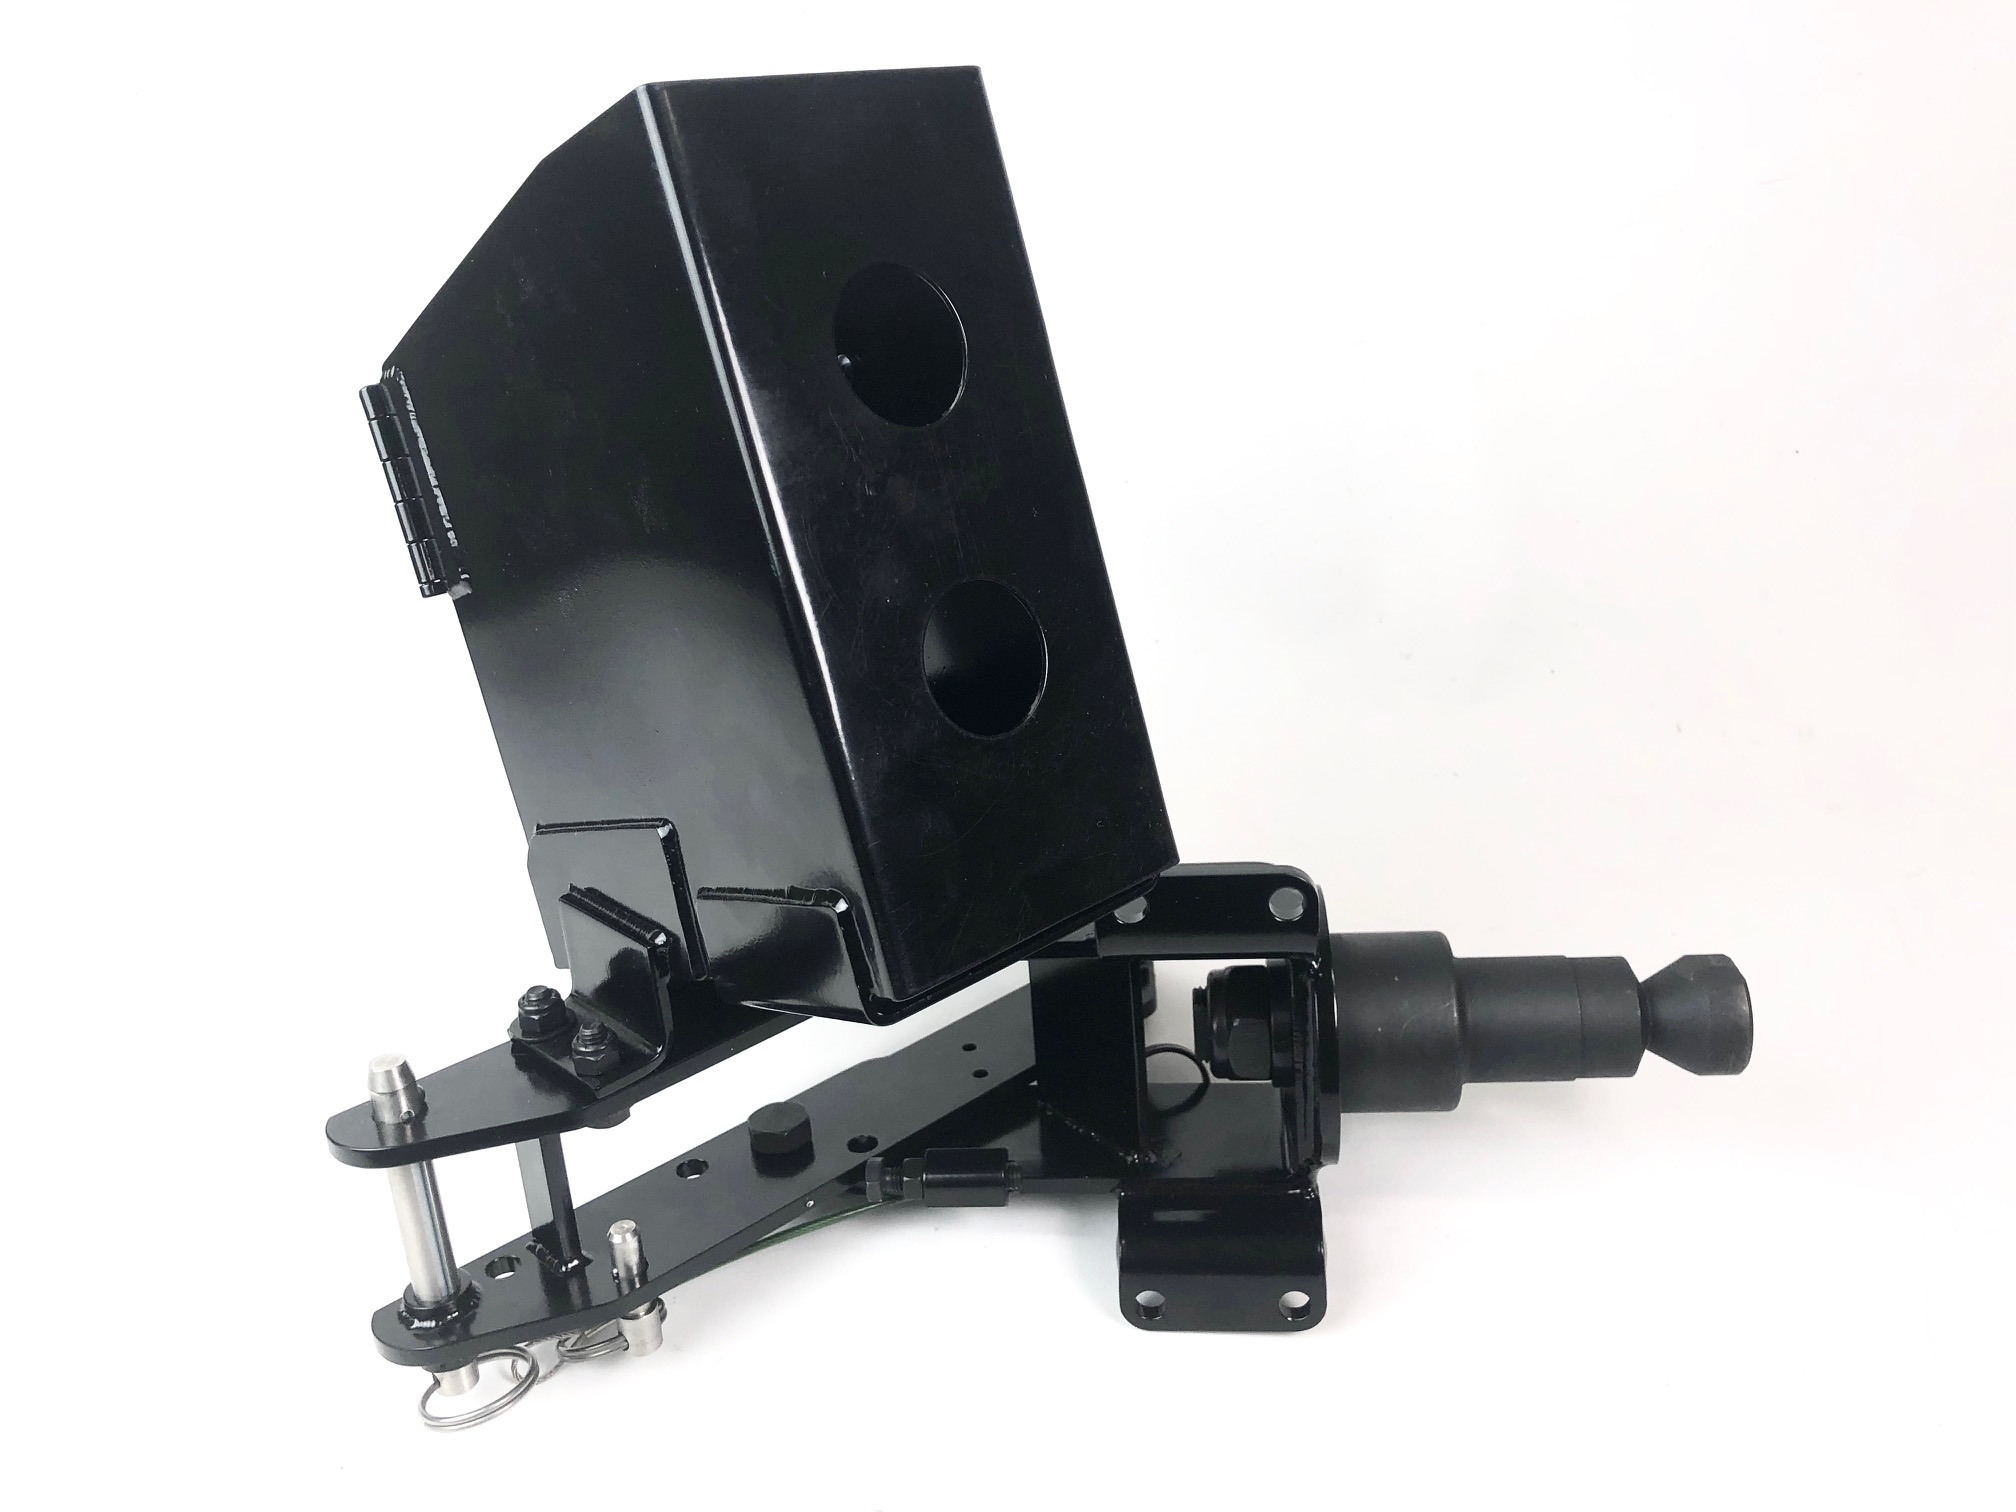 MK97 Mod 0 Machine Gun Mount Assembly